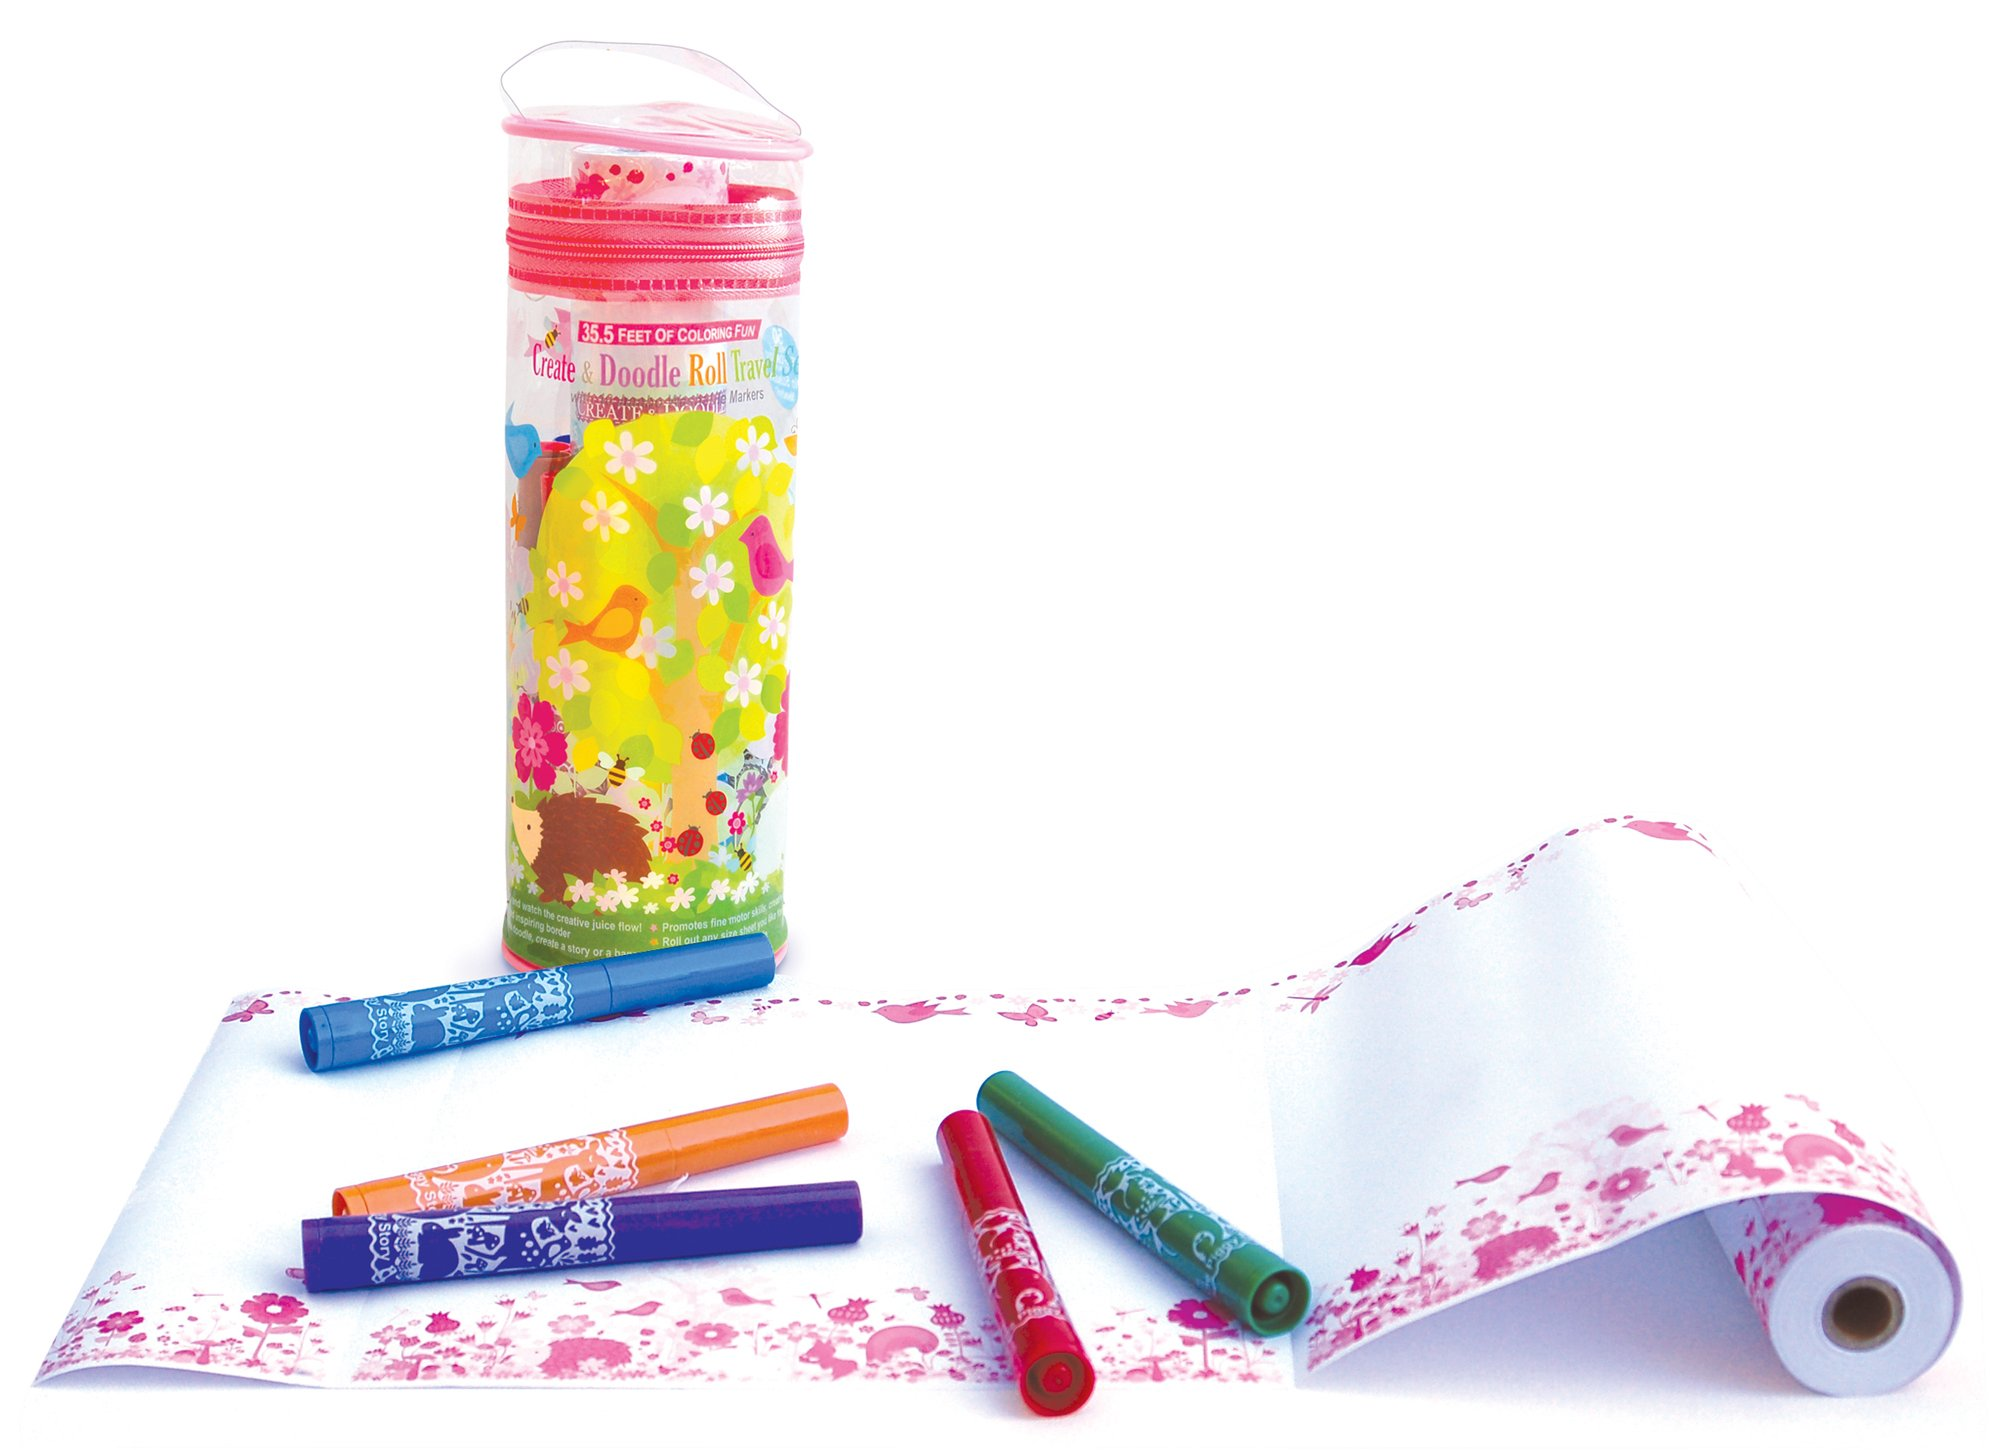 The Piggy Story 'Fairy Garden' Create & Doodle Art Paper Roll Travel Set with Markers